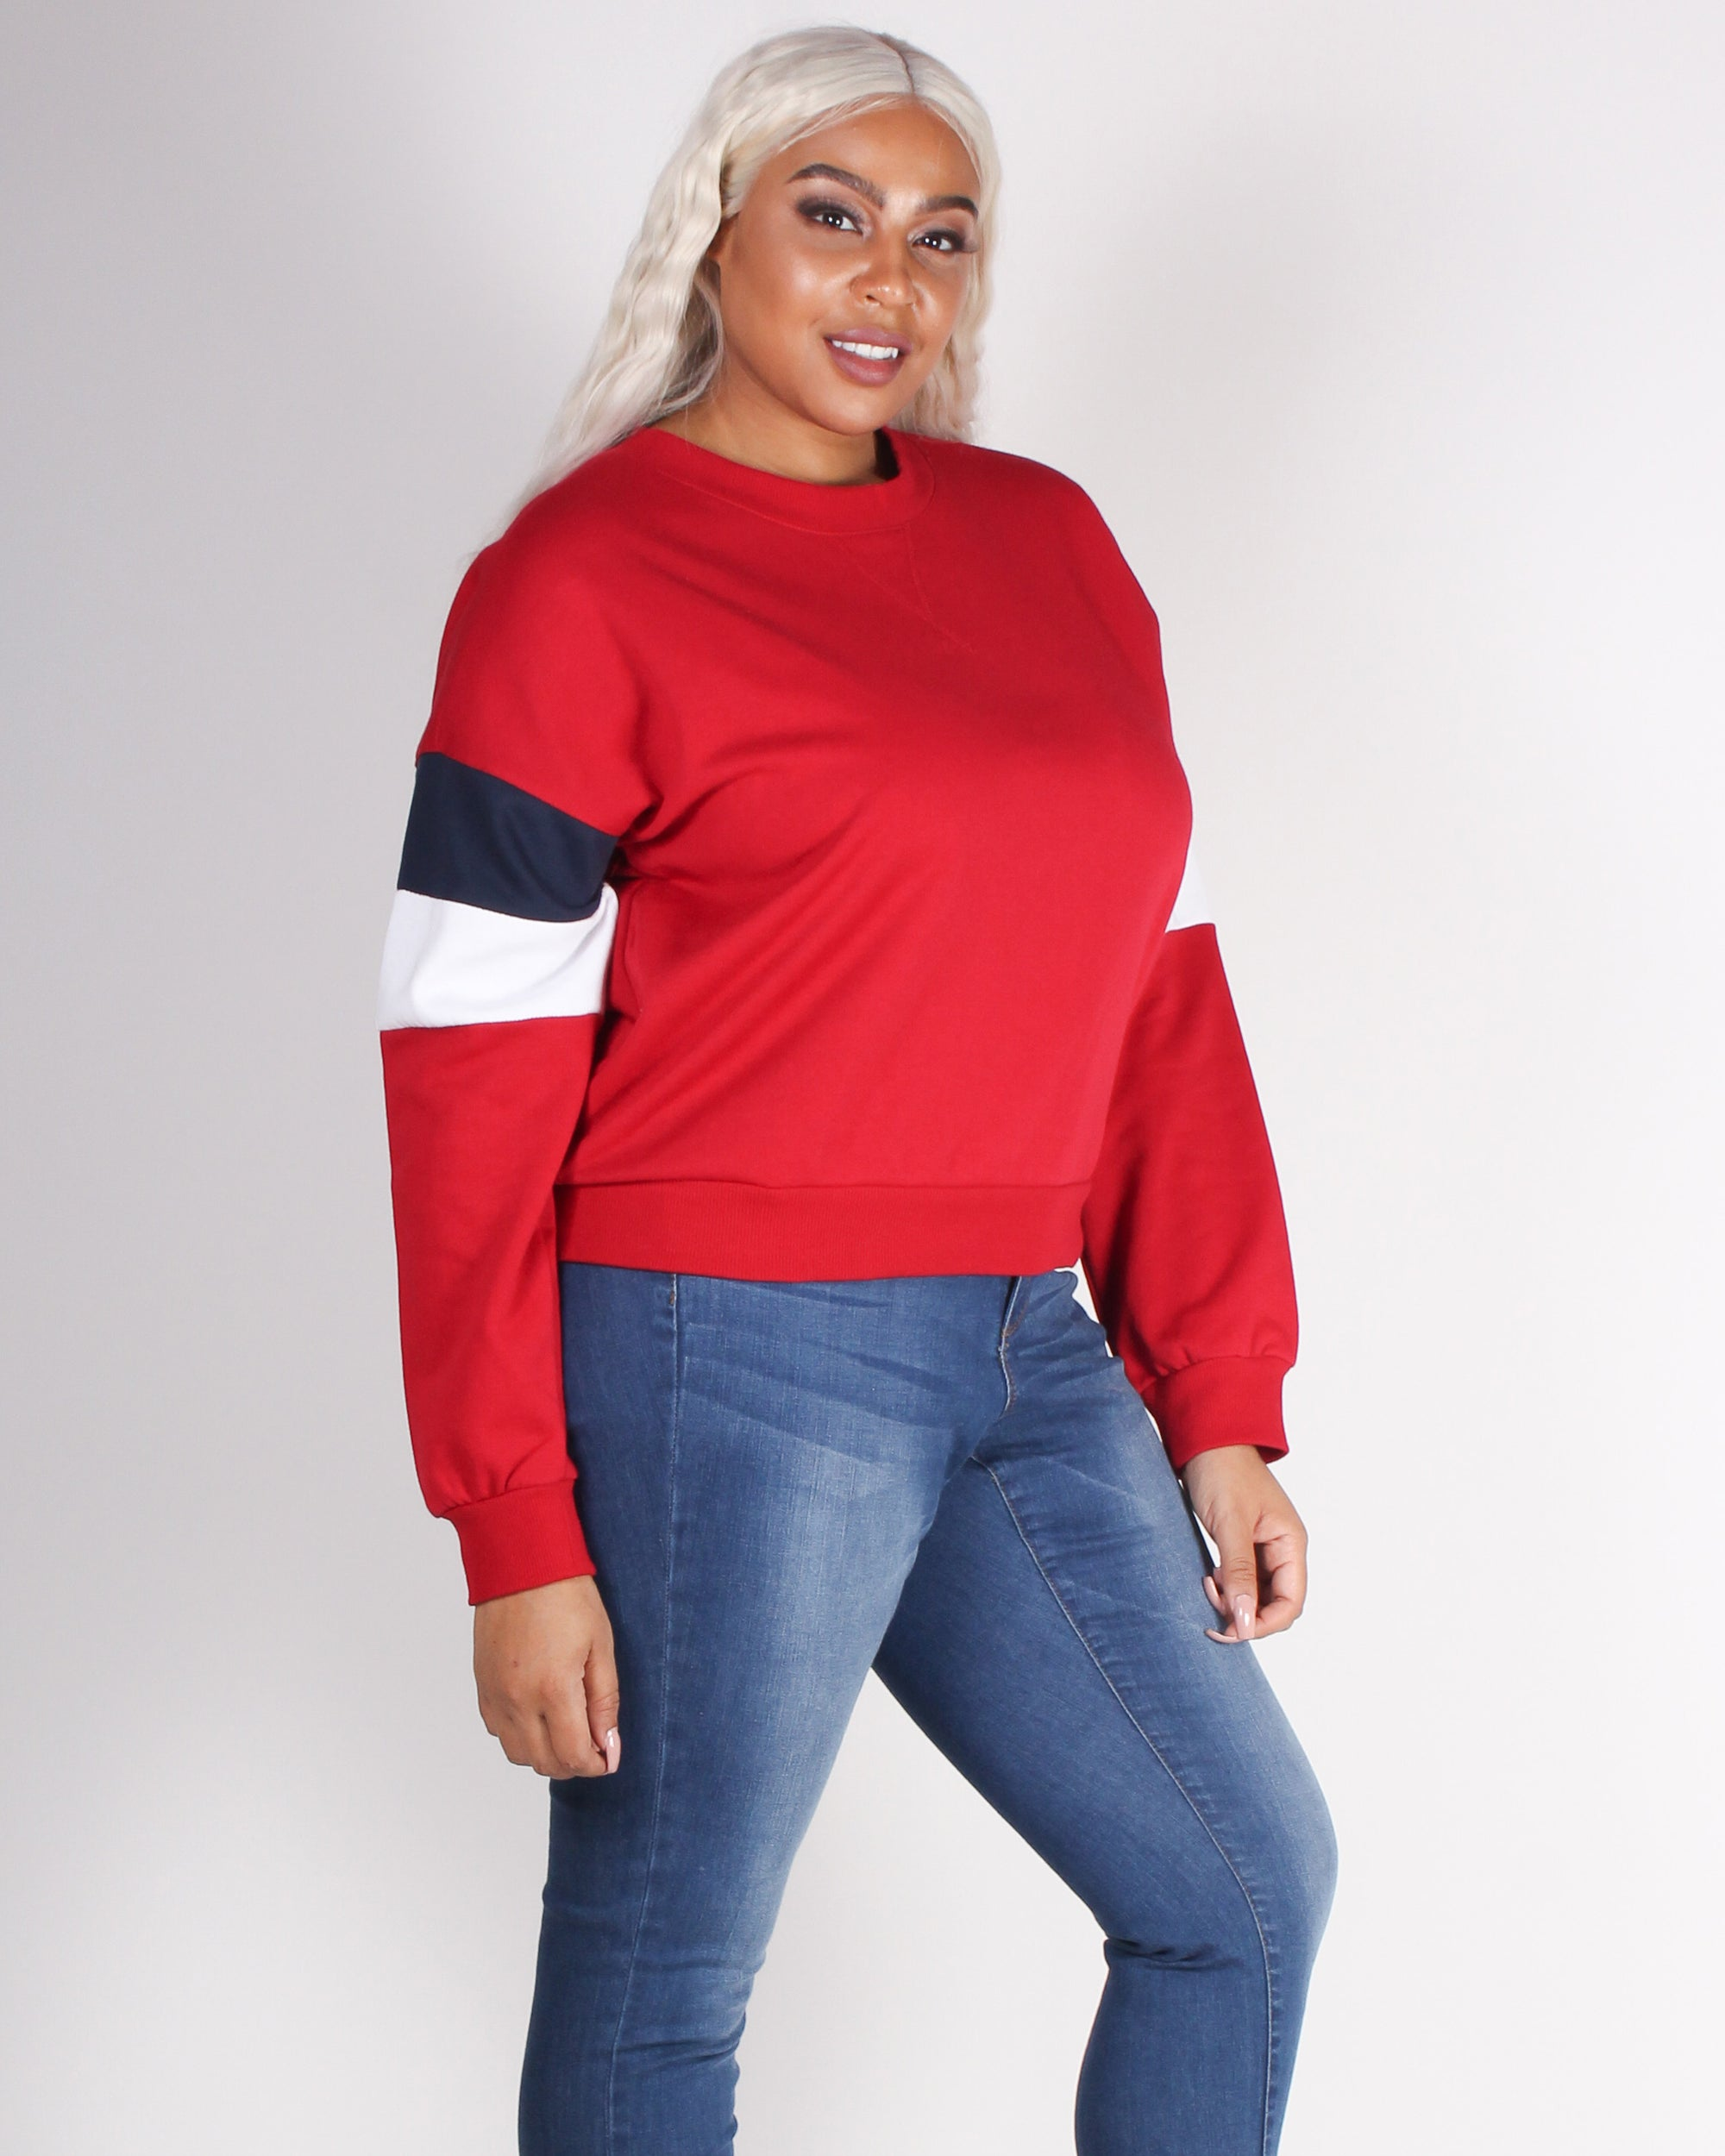 Fashion Q Shop Q Never Give Up Colorblock Sweater (Red) 71290XL